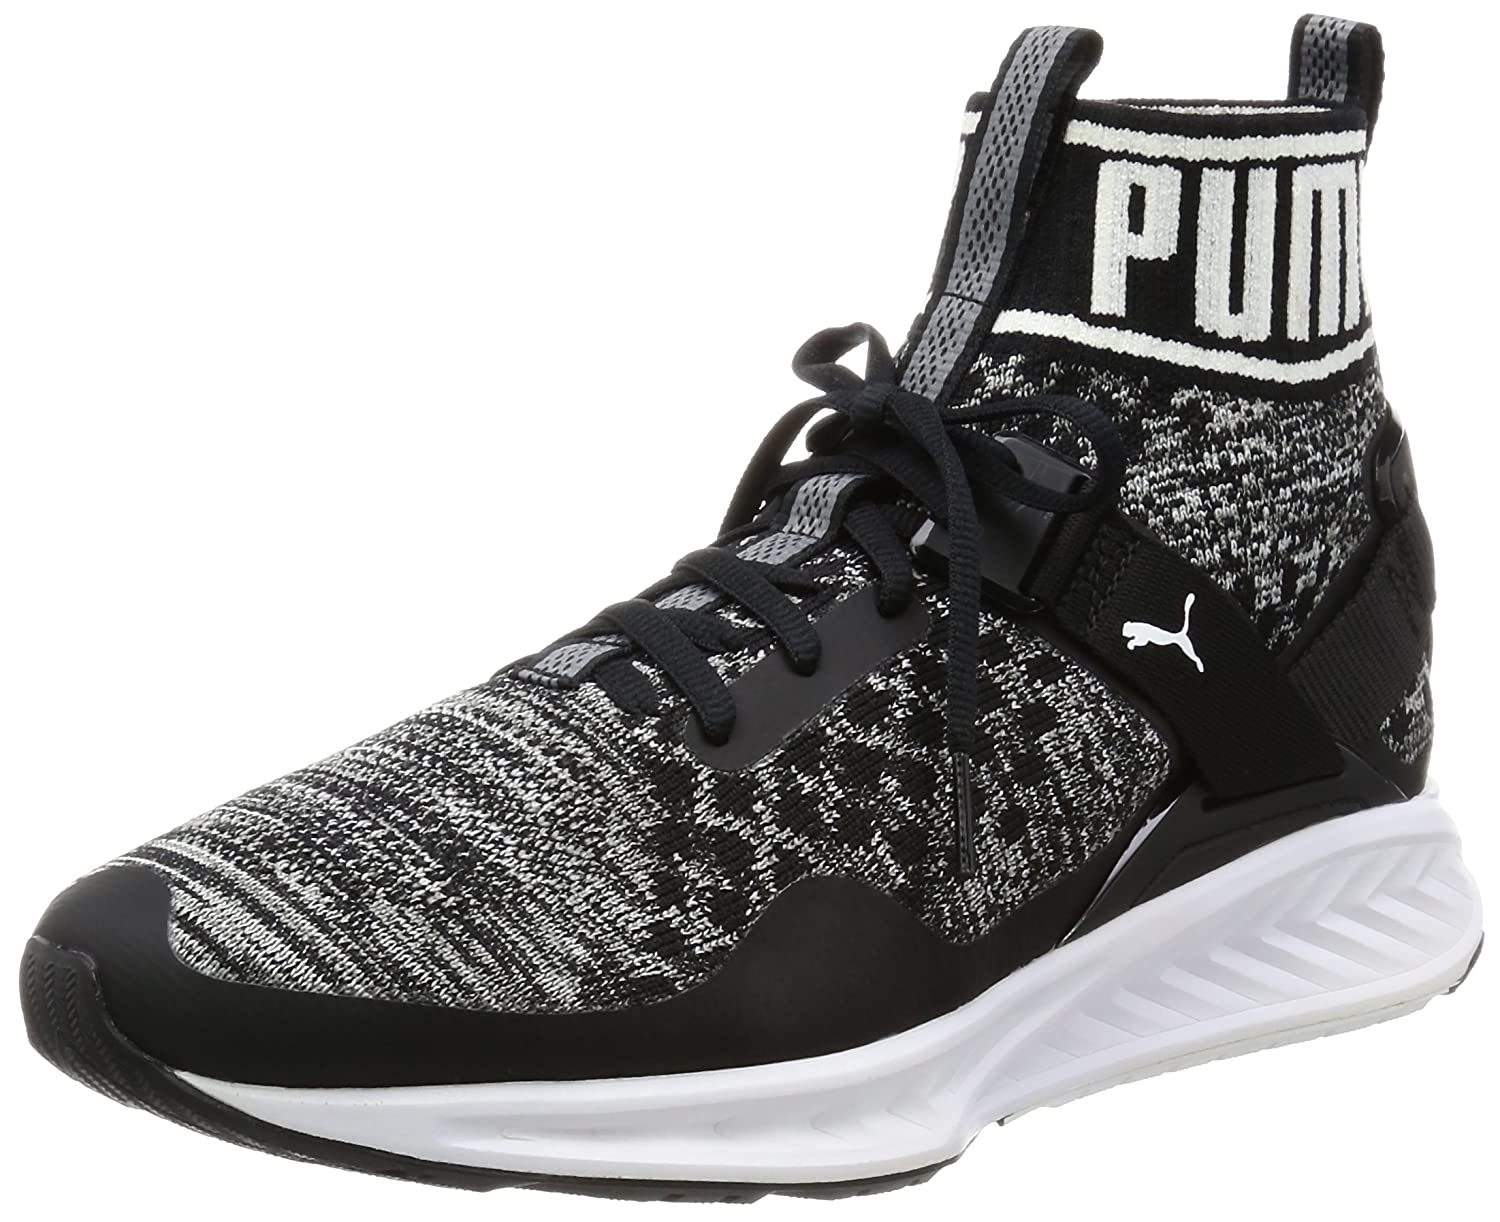 Puma Ignite Evoknit, Zapatillas de Running Unisex Adulto 43 EU|Negro (Black-quiet Shade-white)